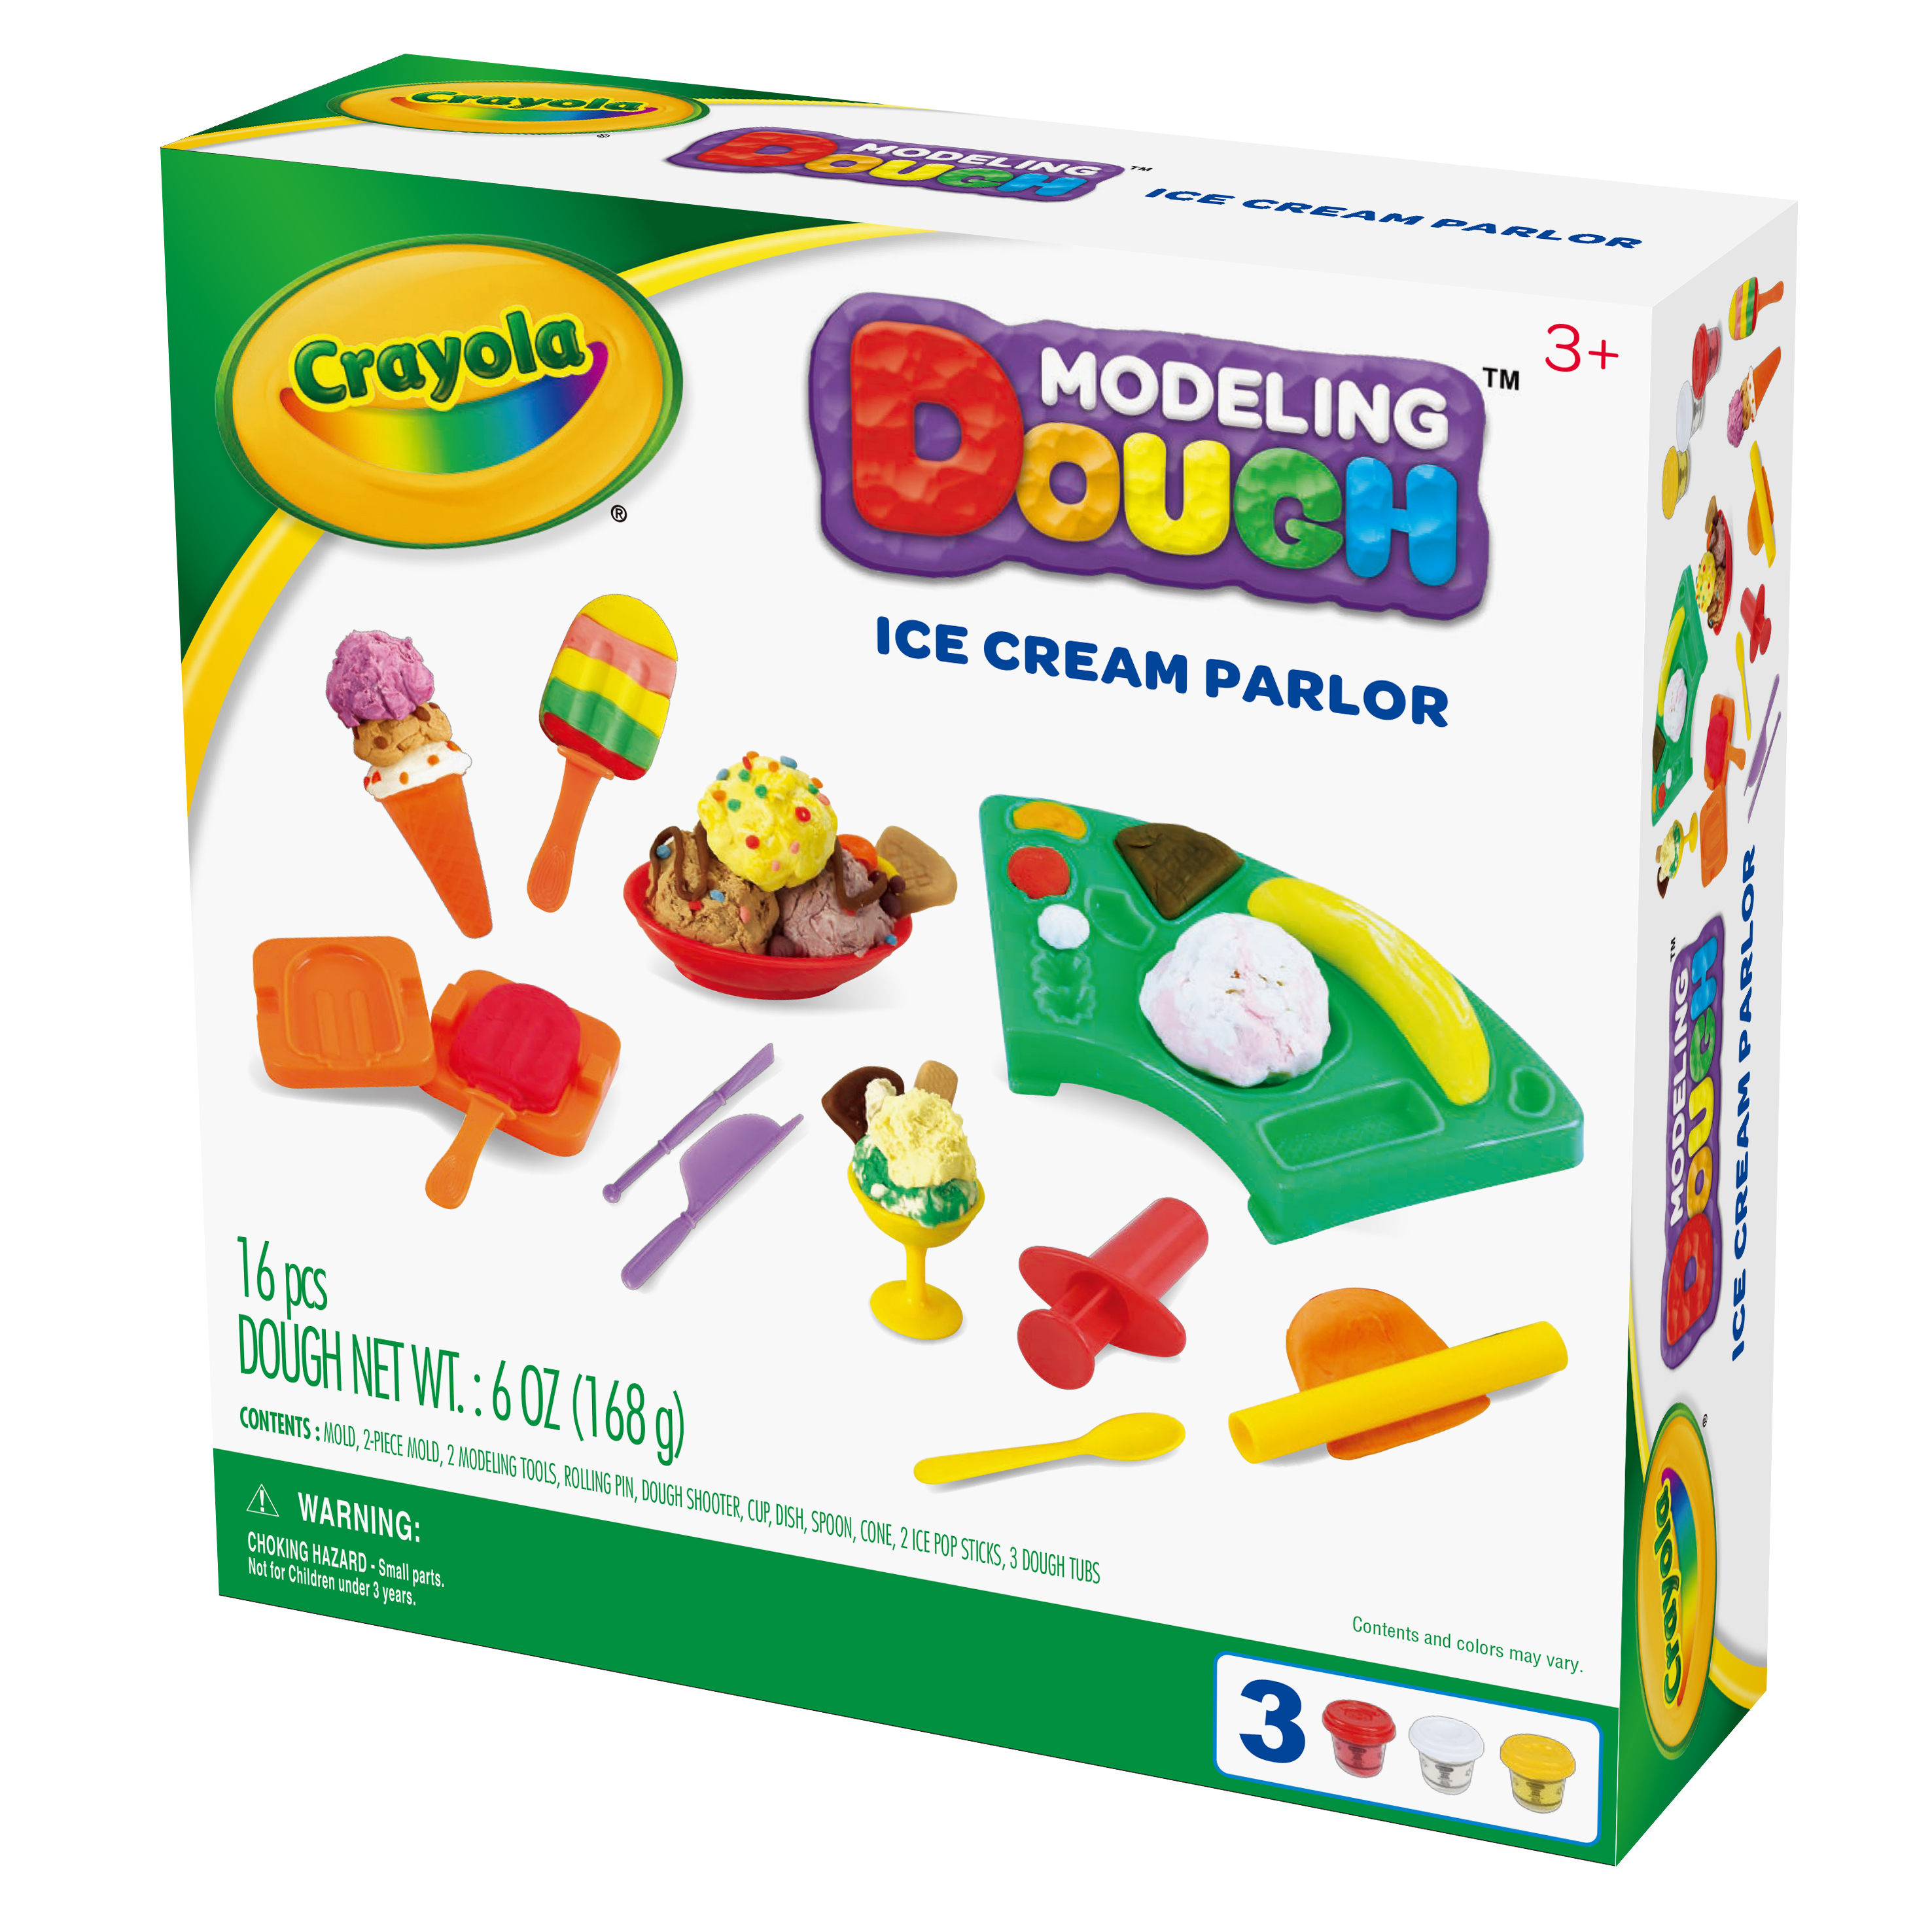 Crayola Ice Cream Parlor Modeling Dough Kit